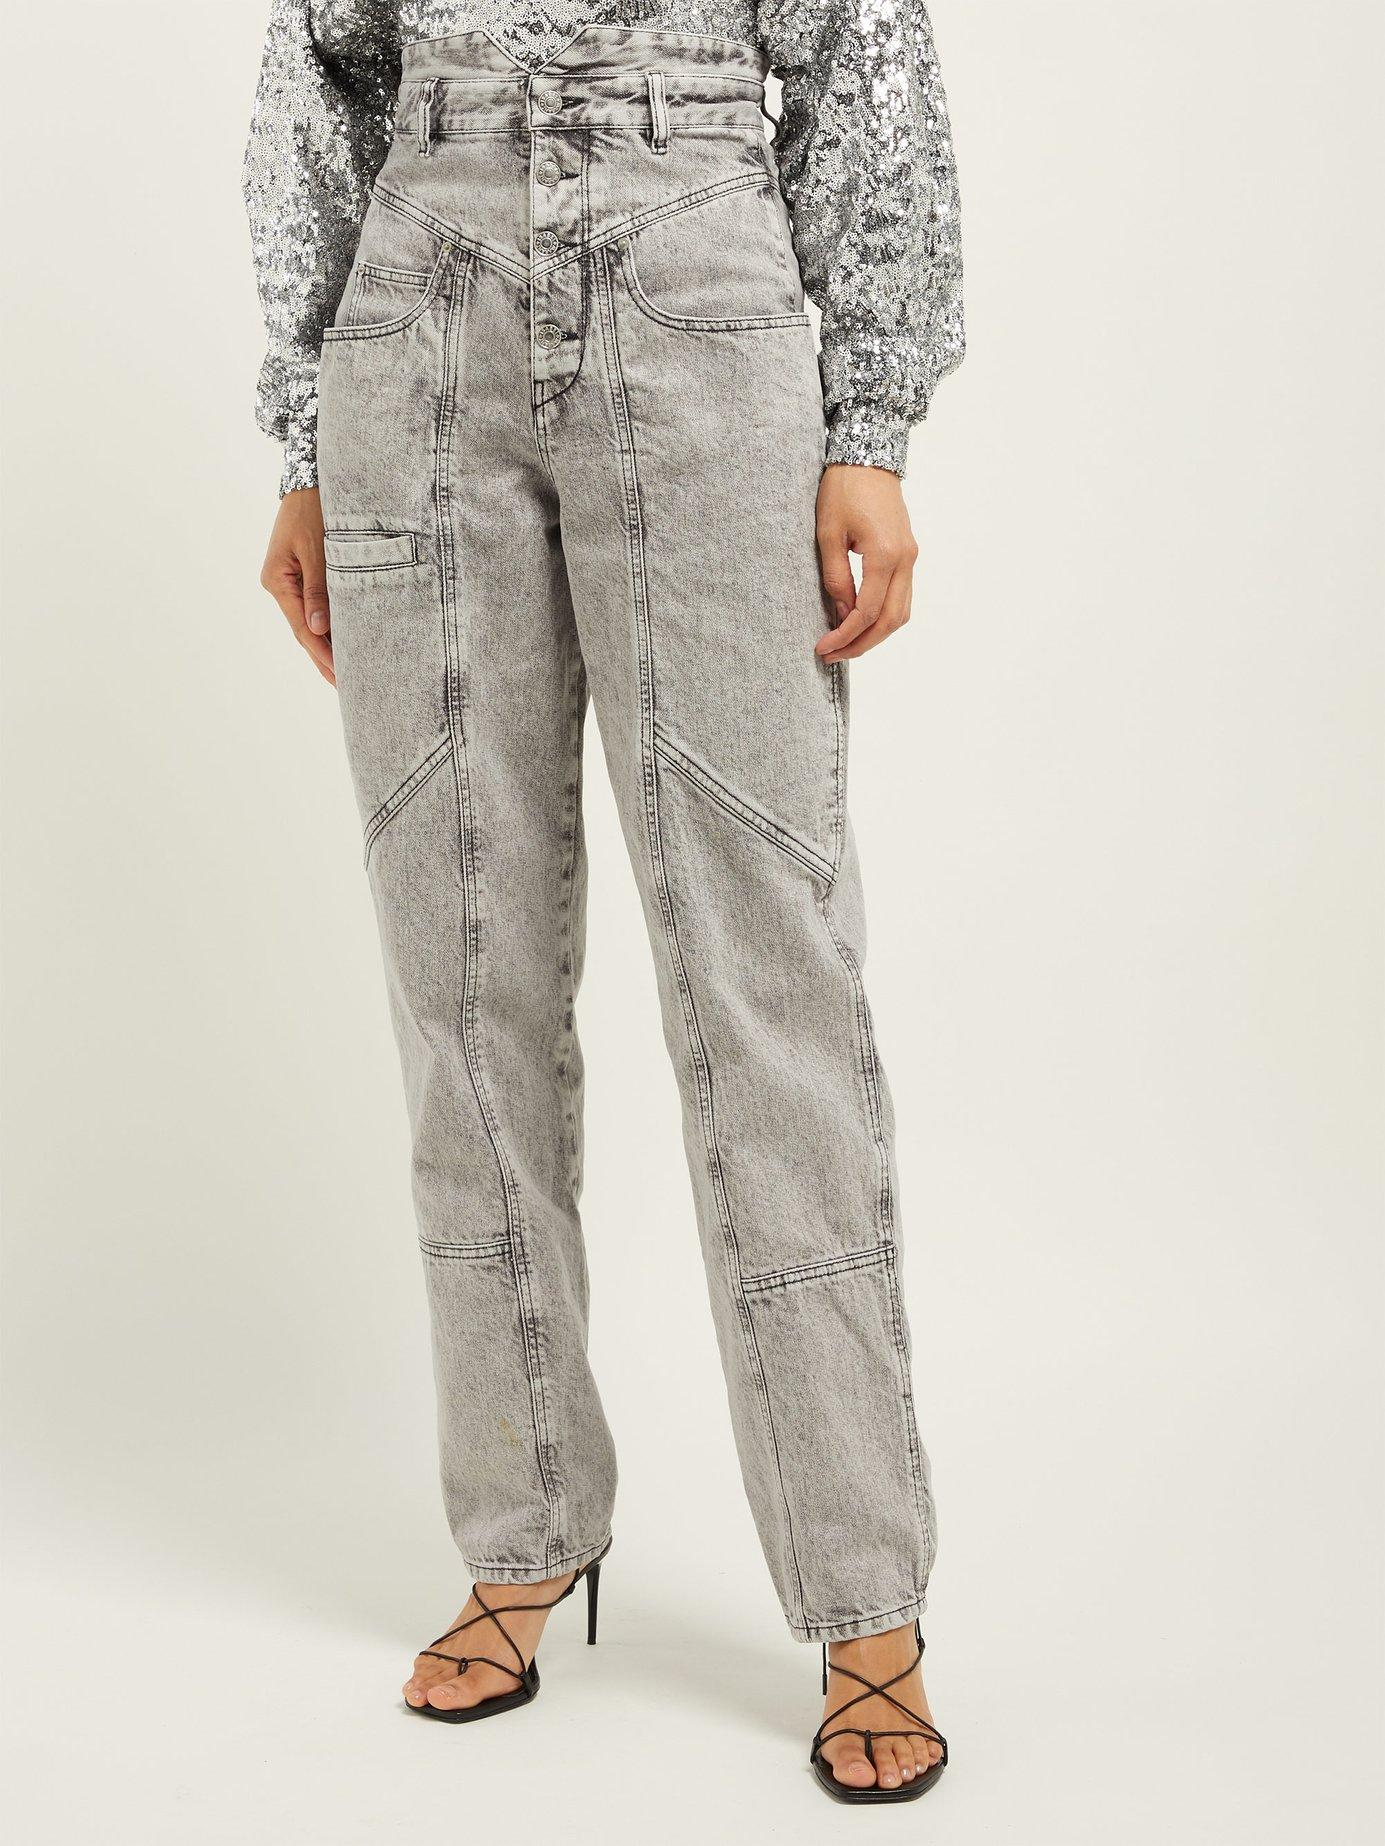 85b9c0d2088 Lyst - Isabel Marant Roger High Rise Panelled Jeans in Gray